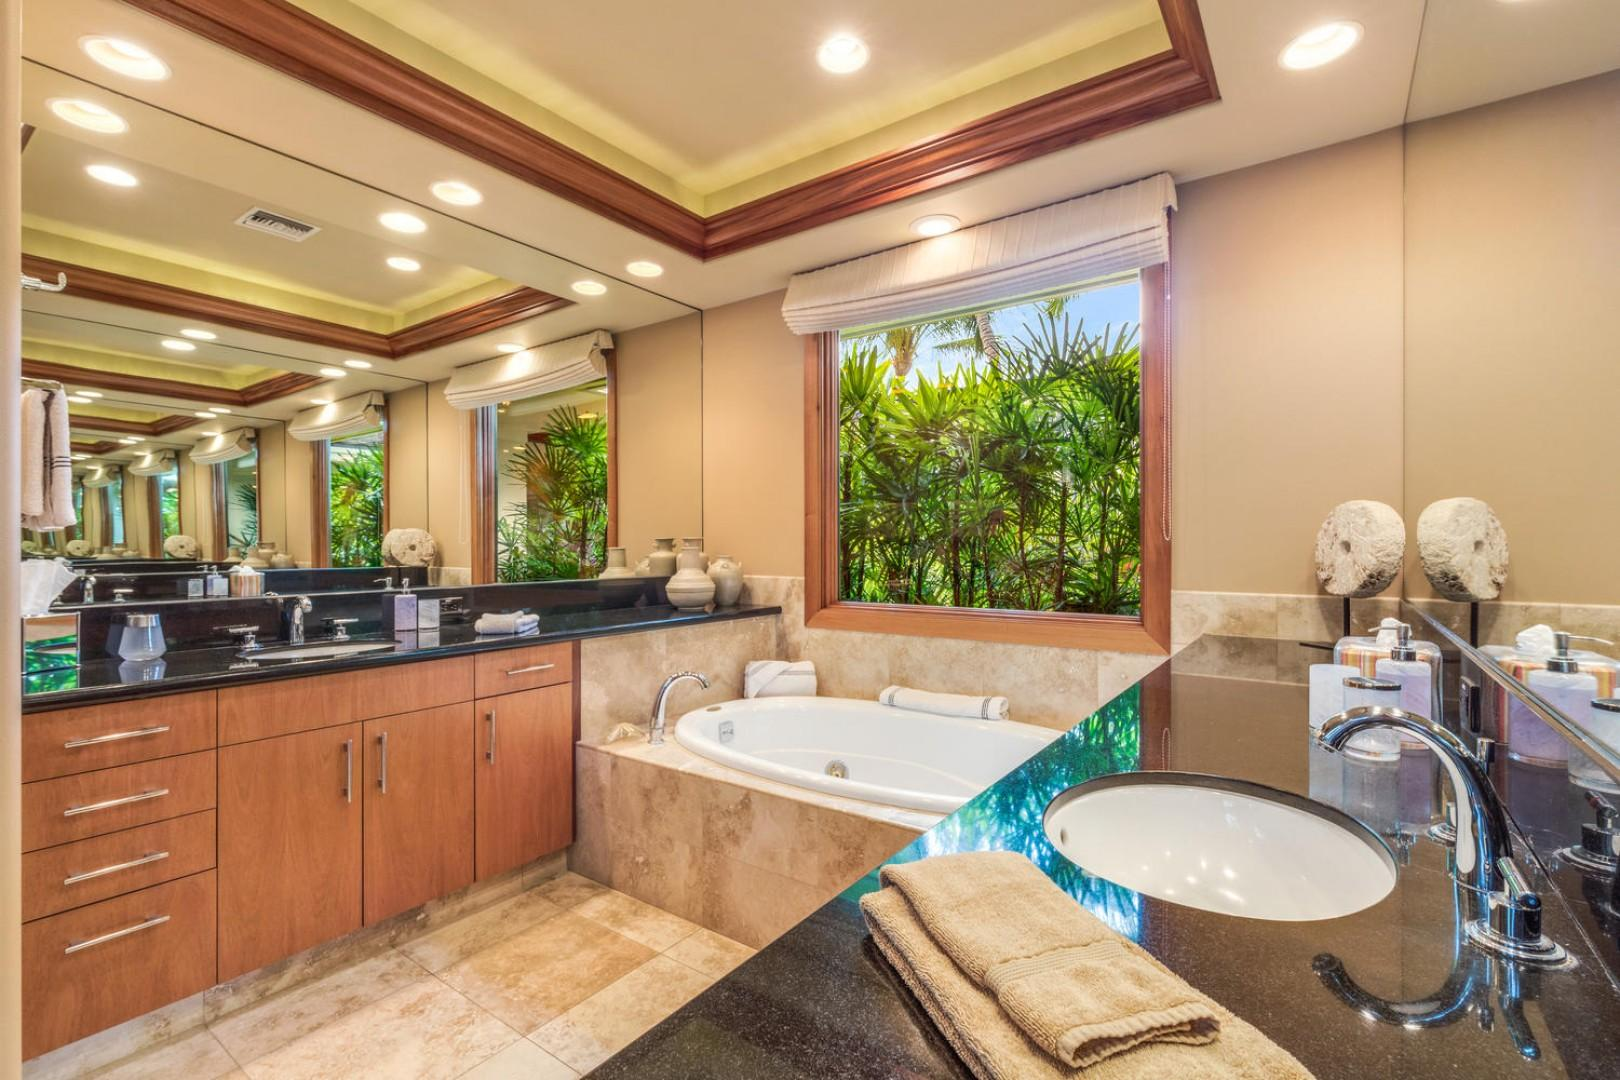 Opulent master bath with dual vanity, jetted tub, and walk-in shower.